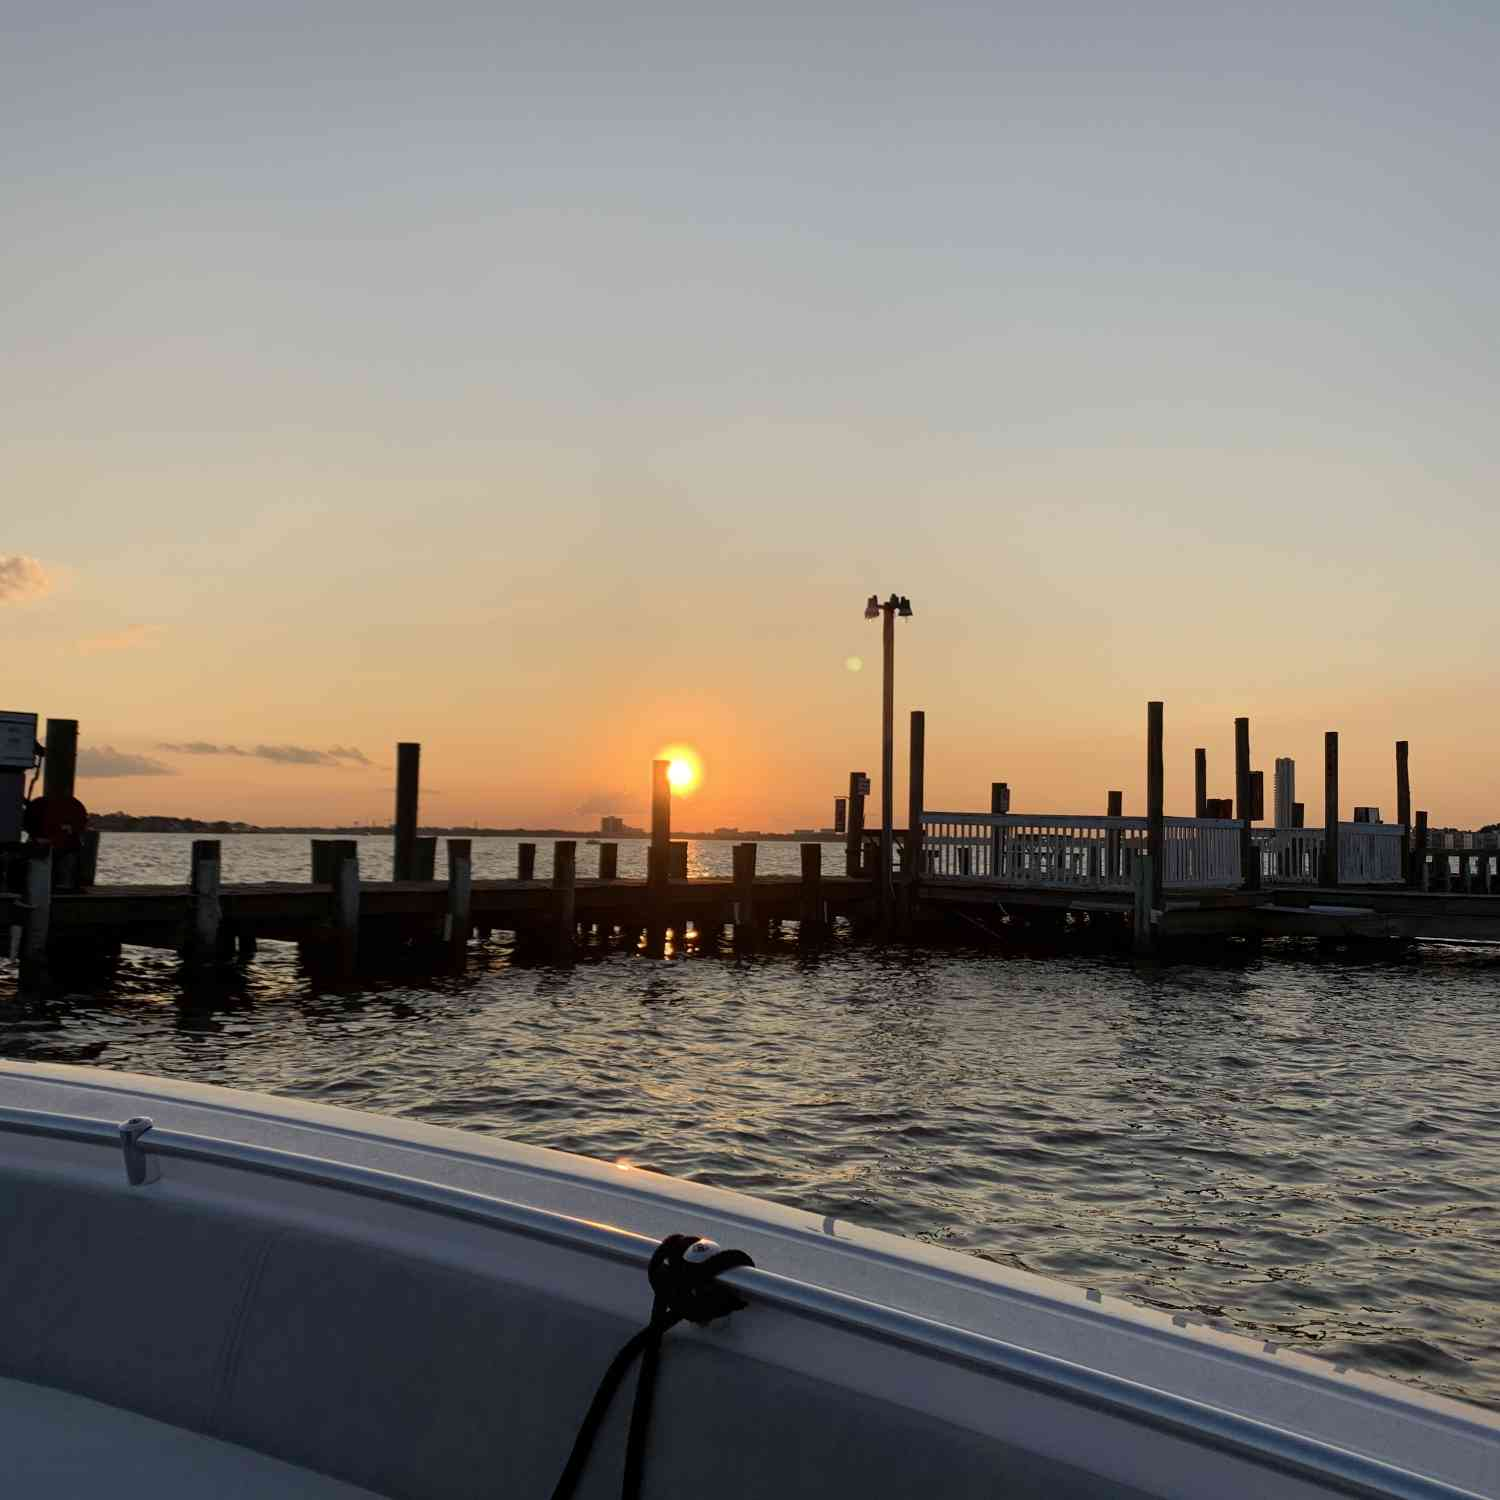 Title: Sunset on clear lake - On board their Sportsman Open 282TE Center Console - Location: Seabrook, TX. Participating in the Photo Contest #SportsmanOctober2020